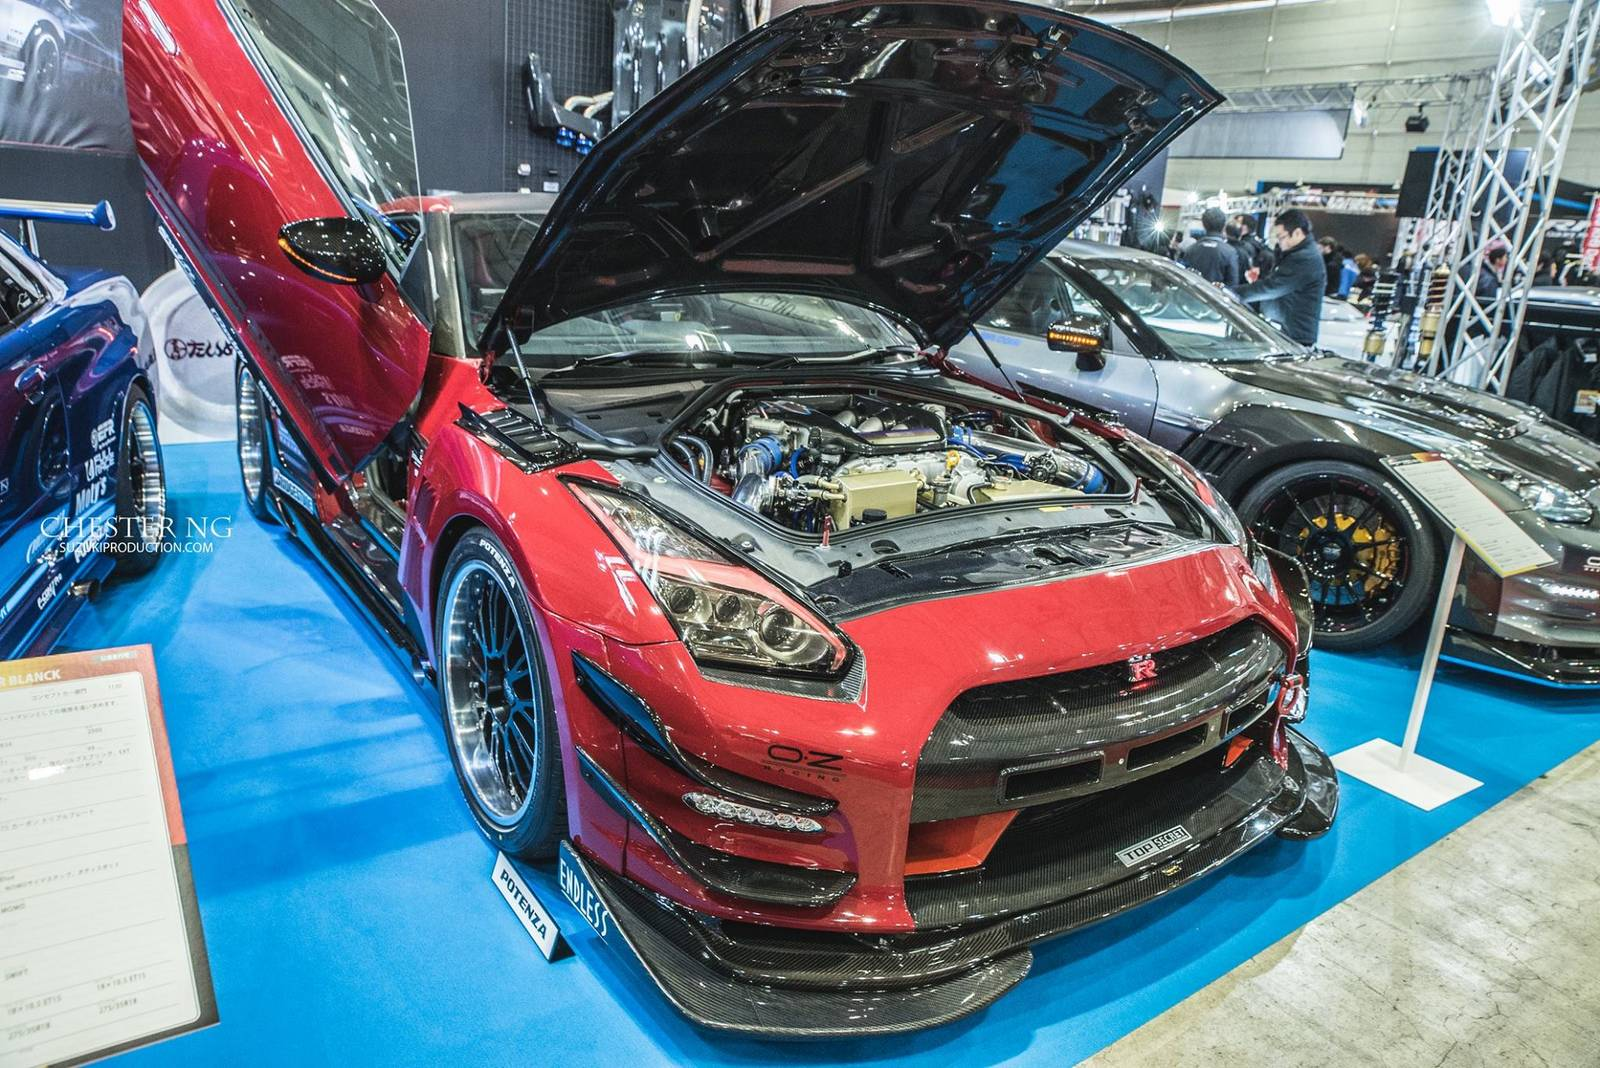 Tuned Vehicles Displayed At The 2016 Edition Of TOKYO AUTO SALON 4